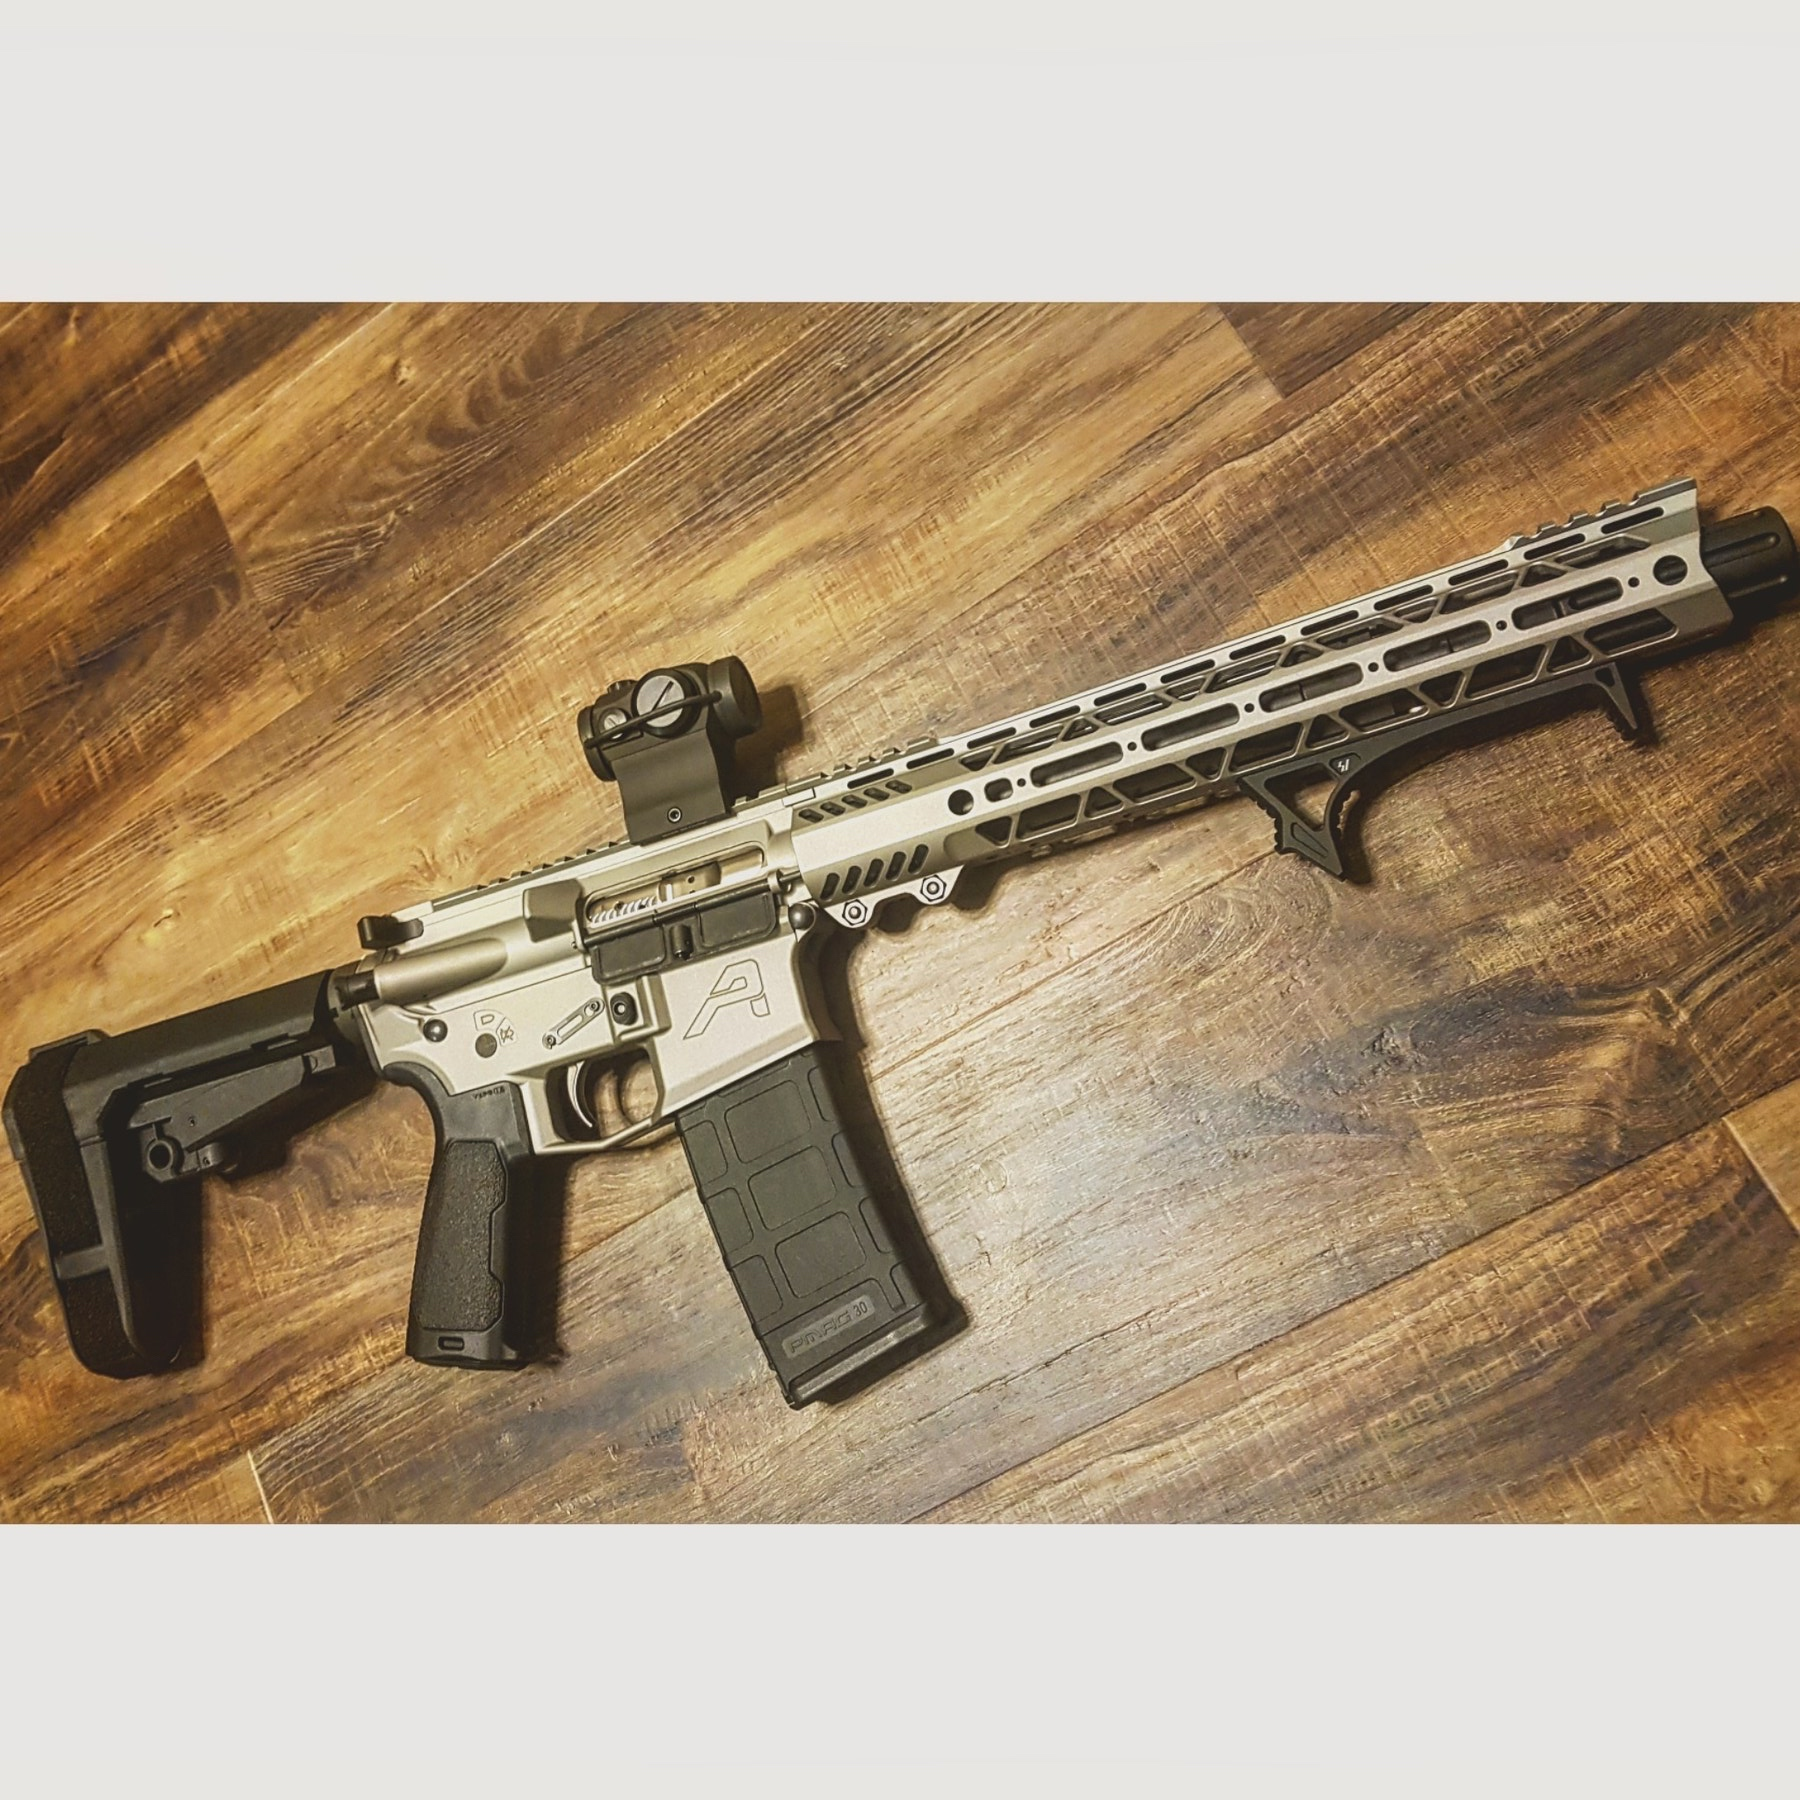 Build an AR-15 for UNDER $500